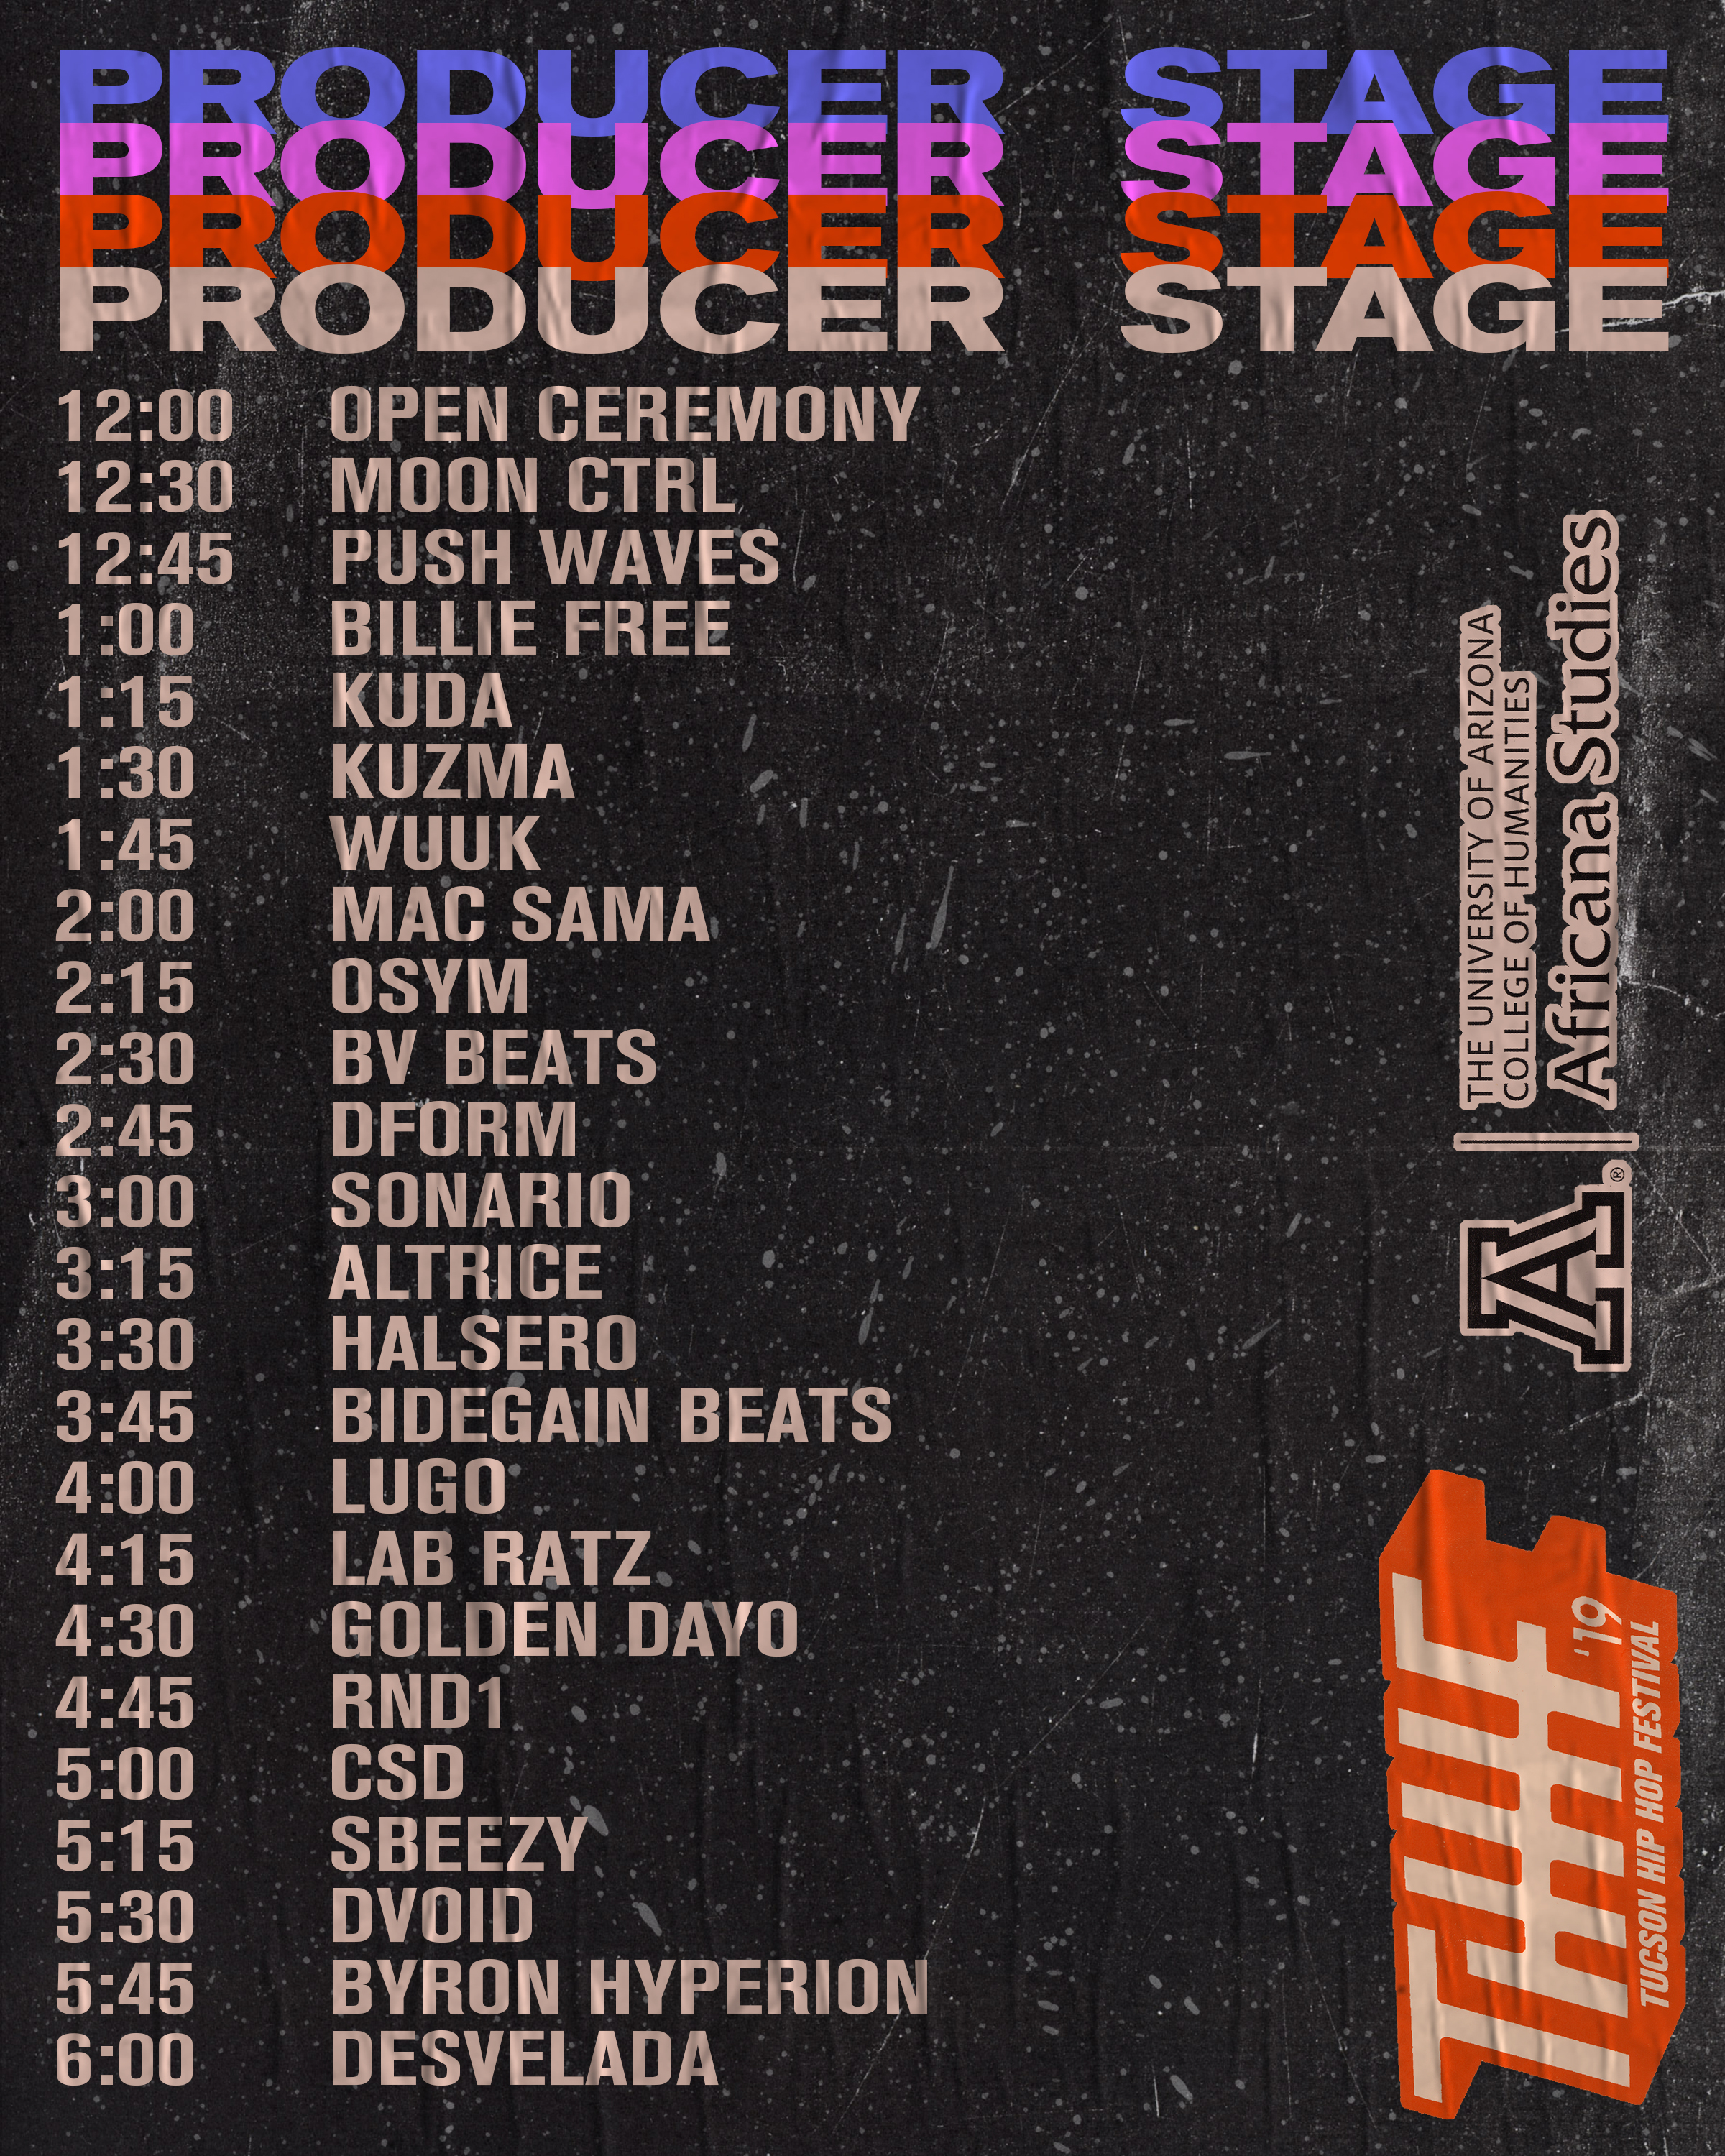 PRODUCER STAGE set times.jpg